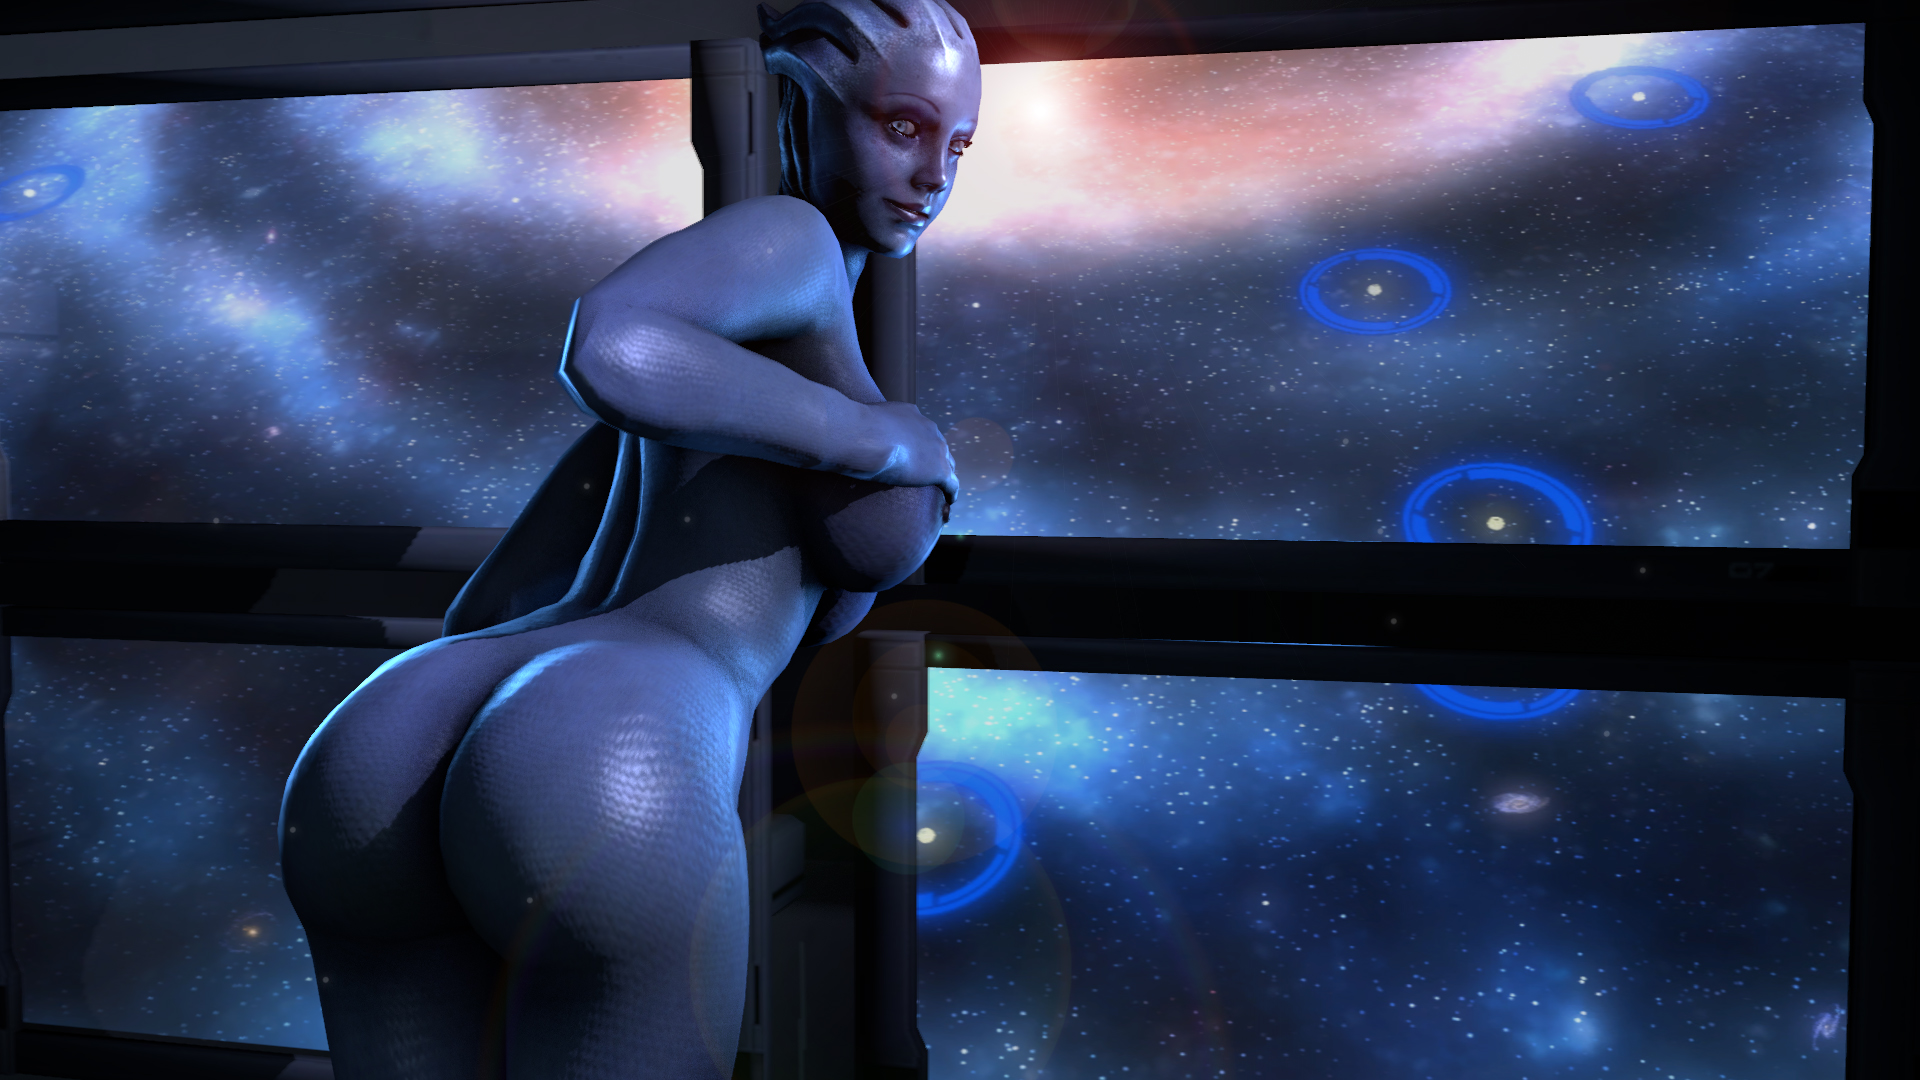 Sexy mass effect photo nude photo